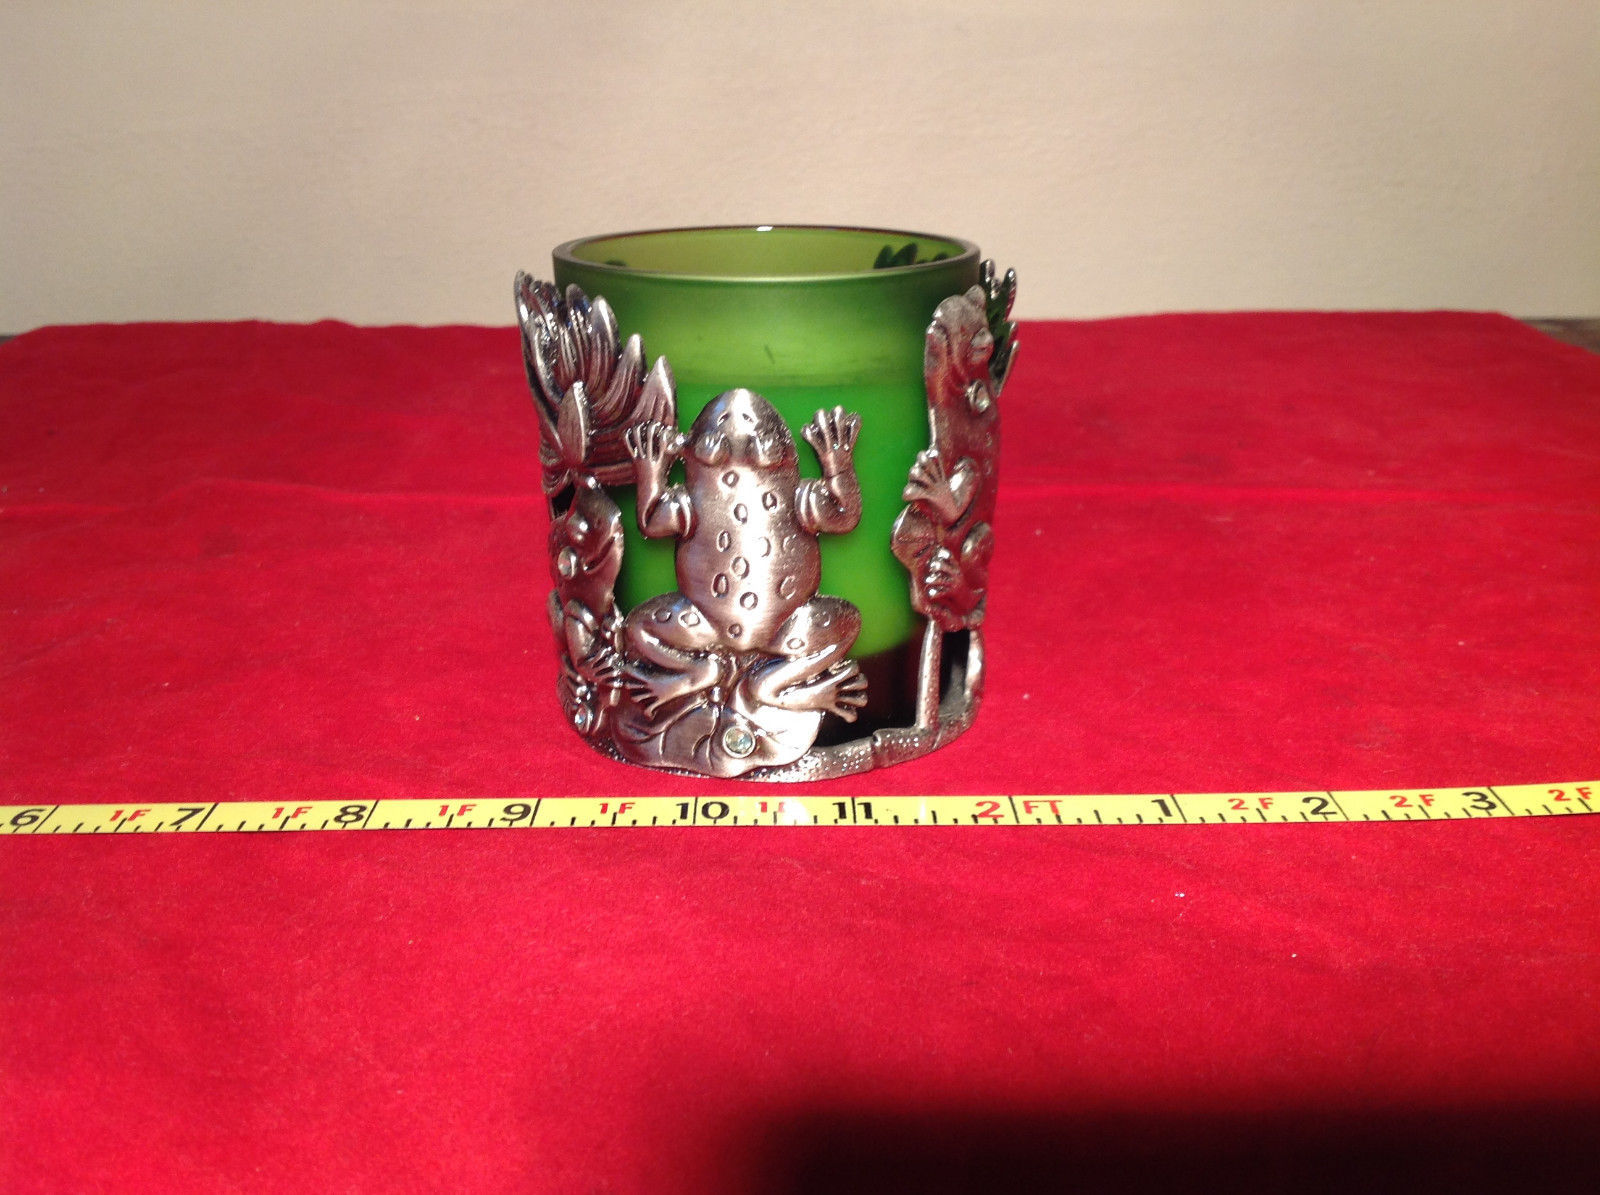 Decorative Green Candle with Candle Holder Metal Frog Design Faux Jewels